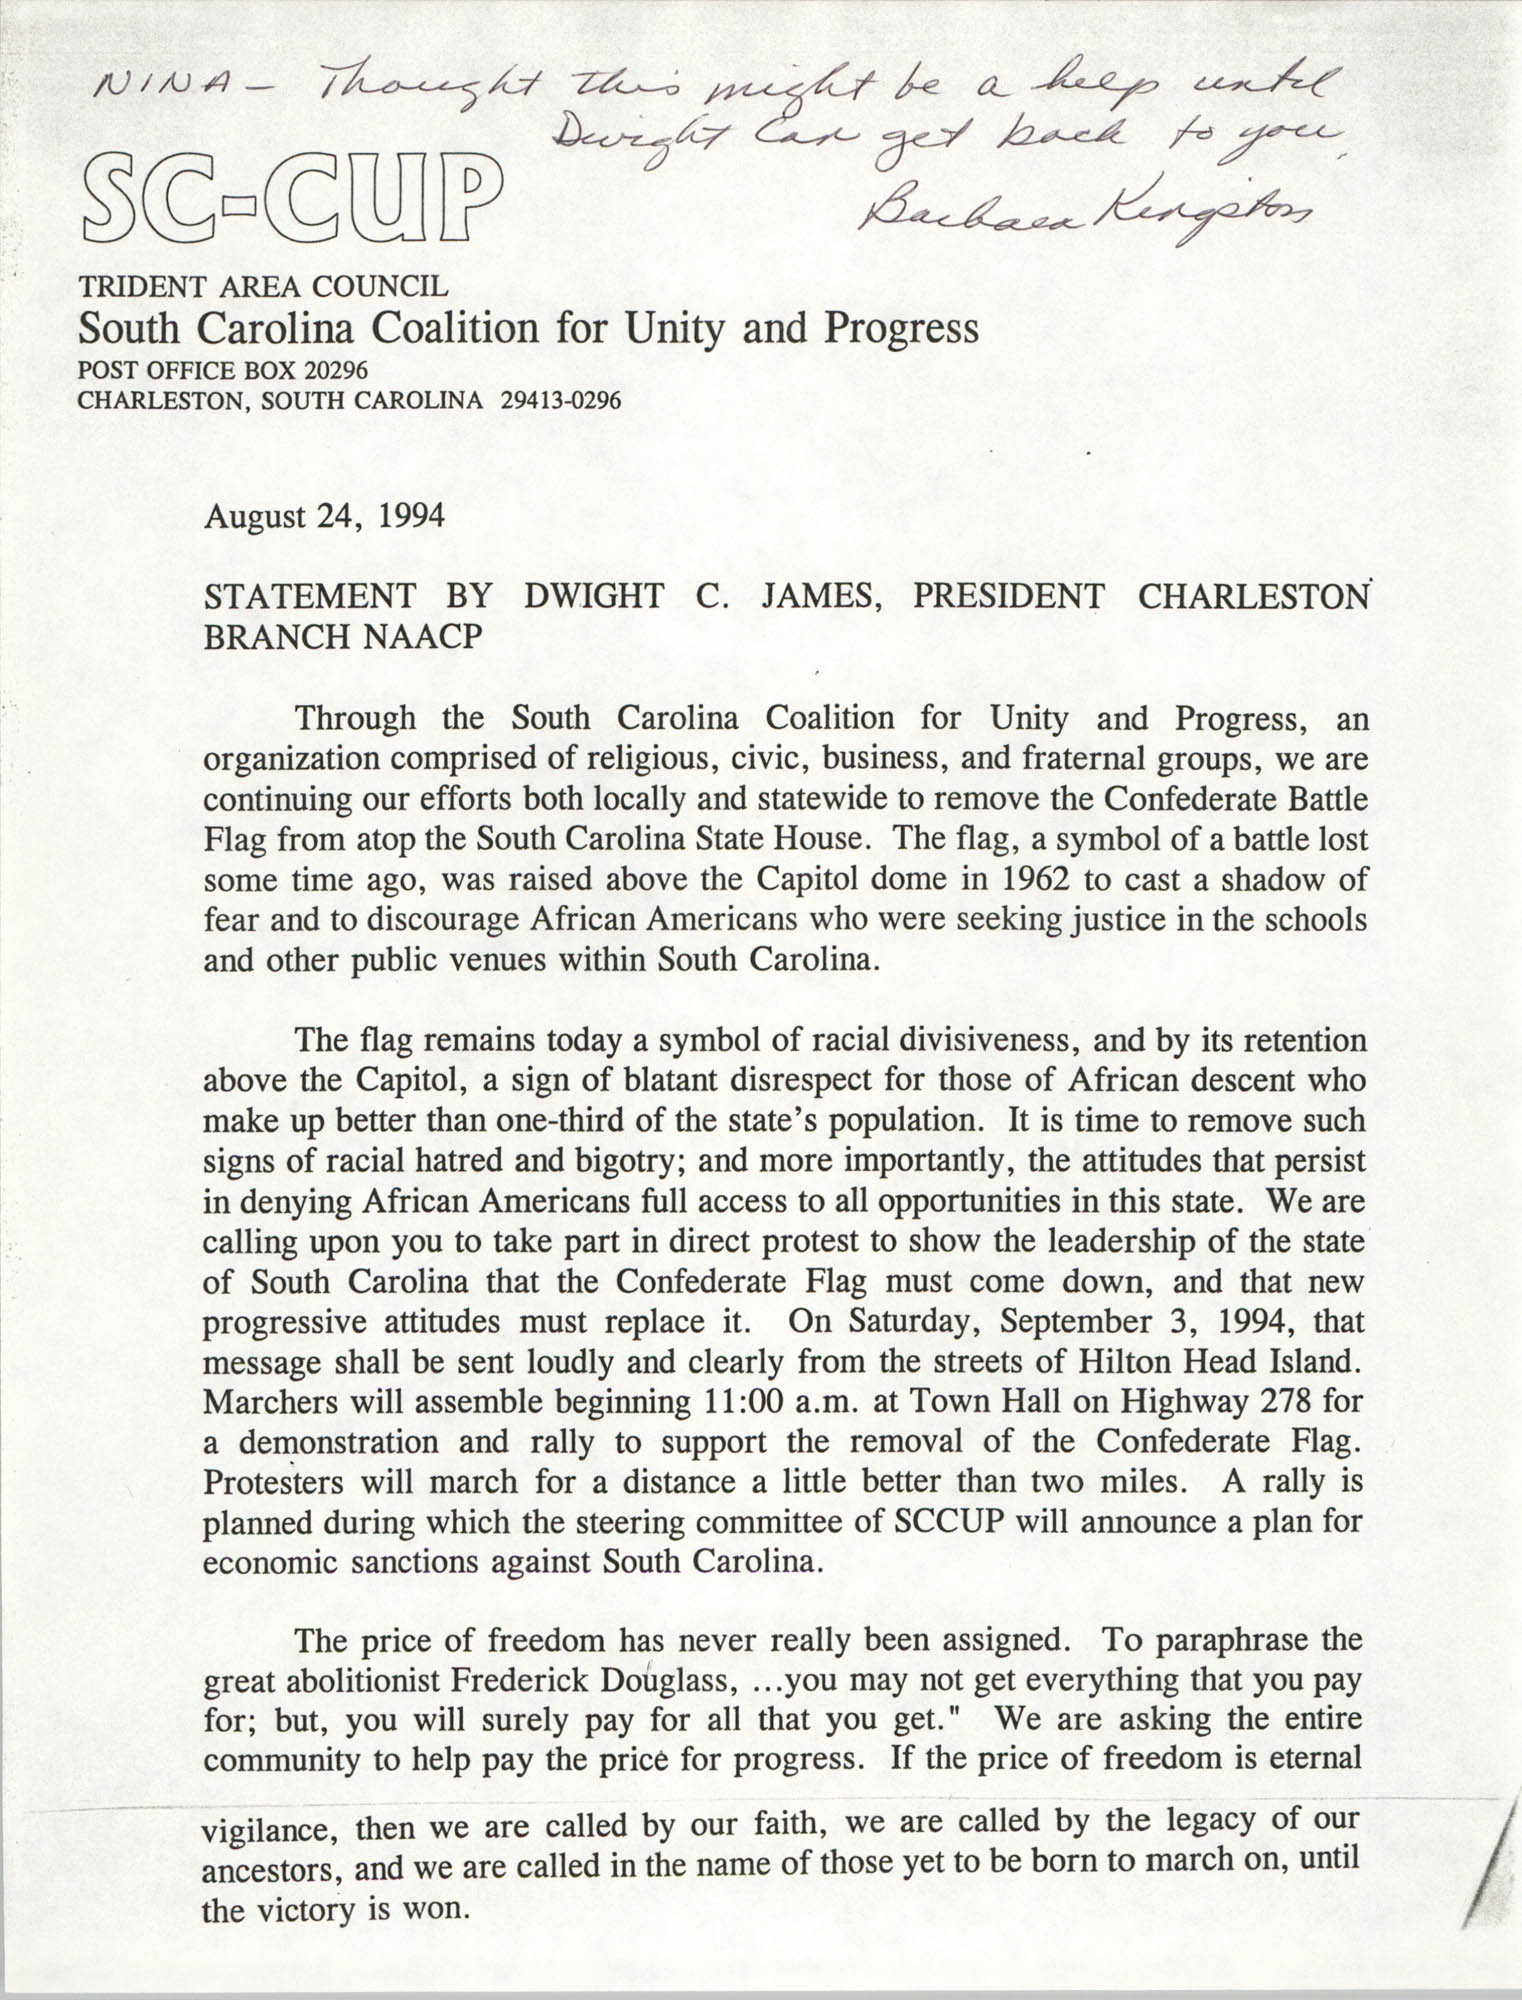 South Carolina Coalition for Unity and Progress Statement, August 24, 1994